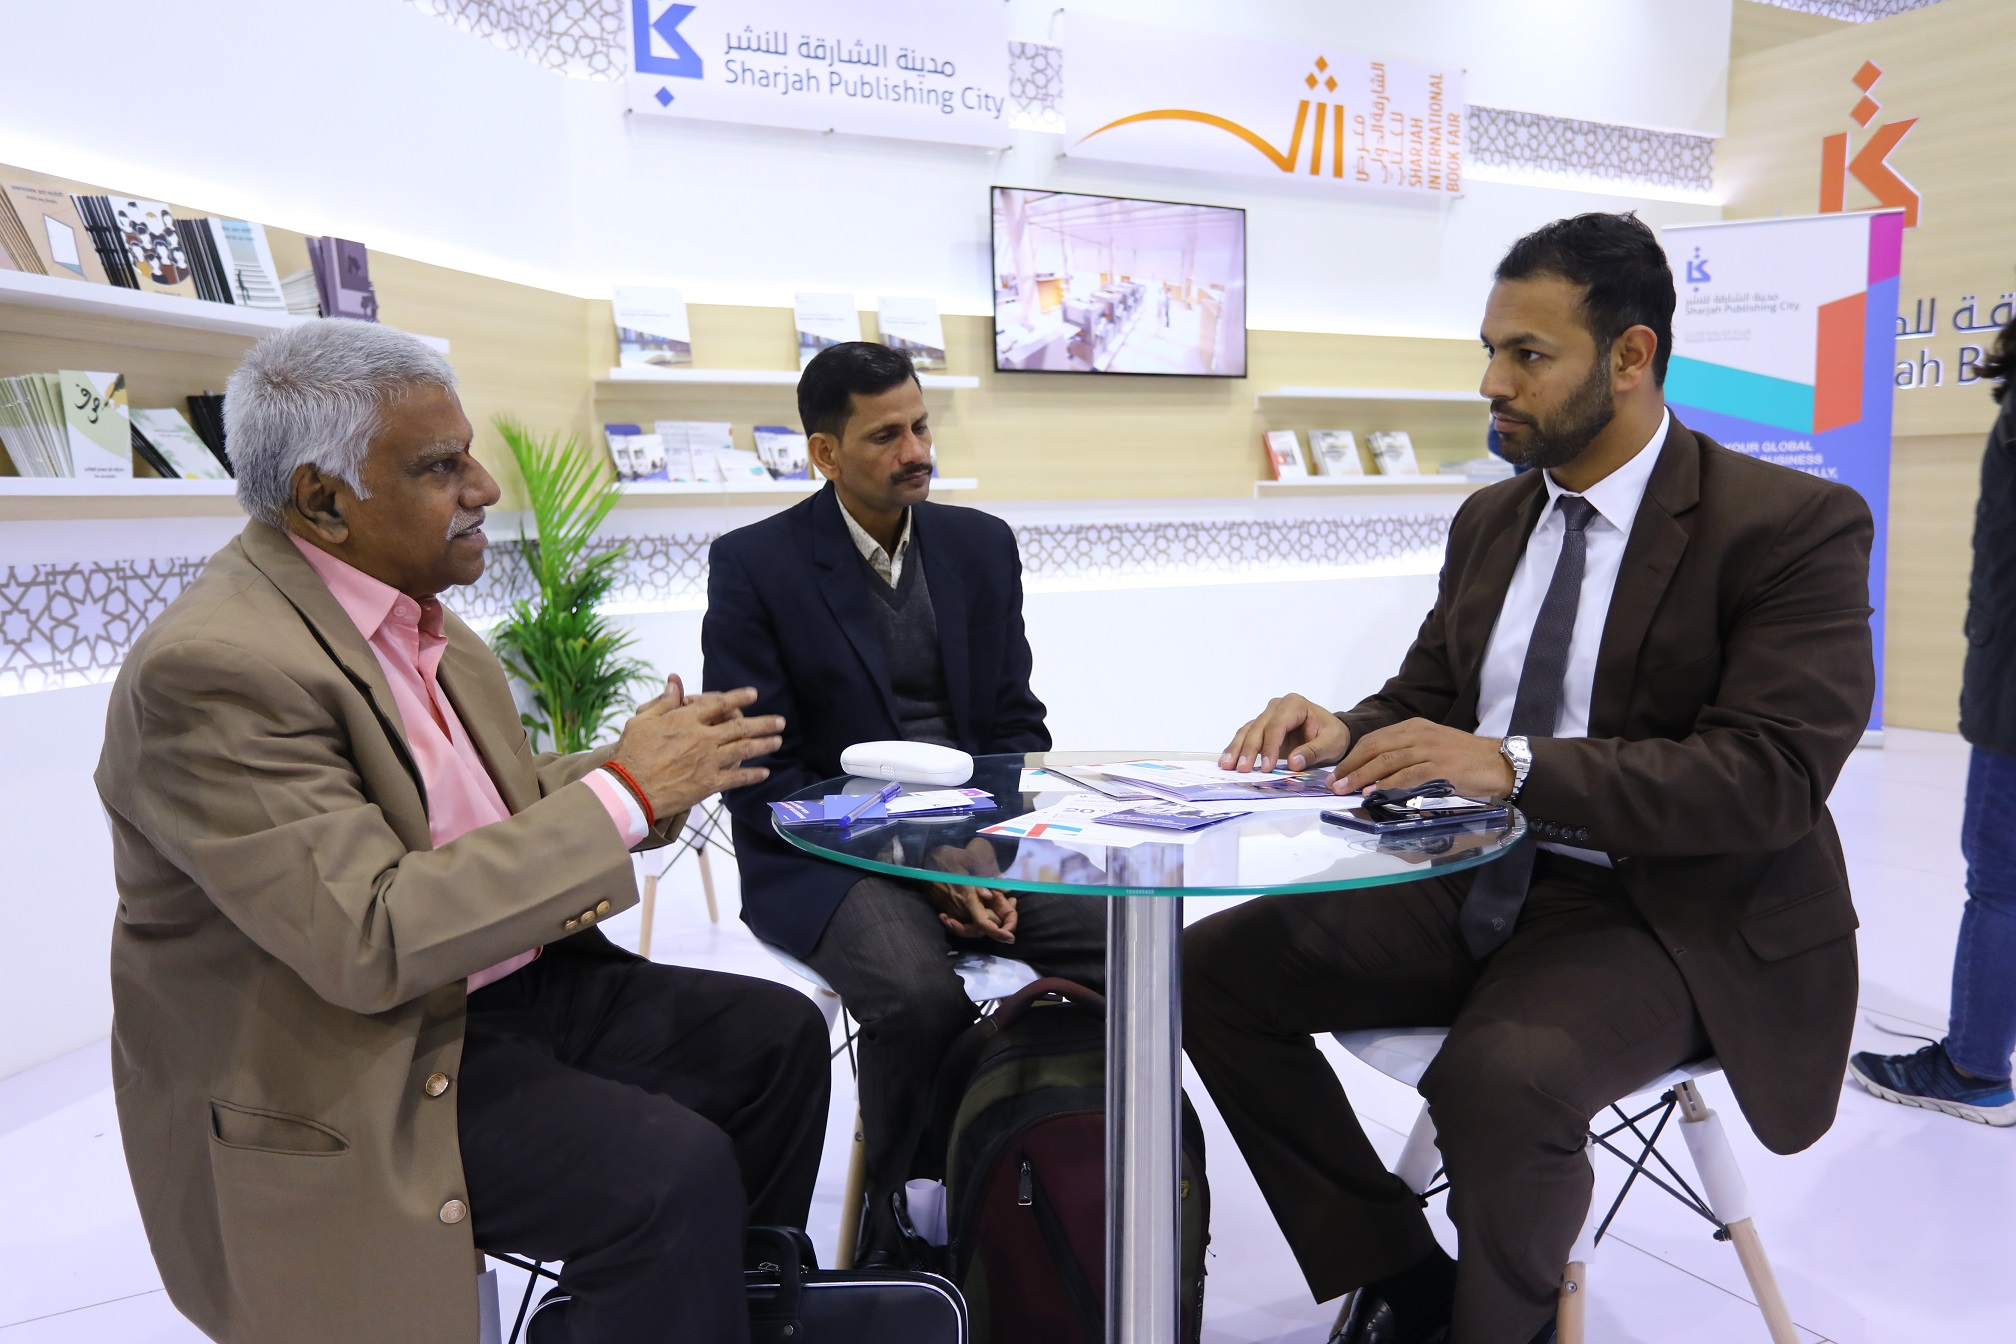 sharjah publishing city highlights strong investment opportunities to indian publishers 3.jpg